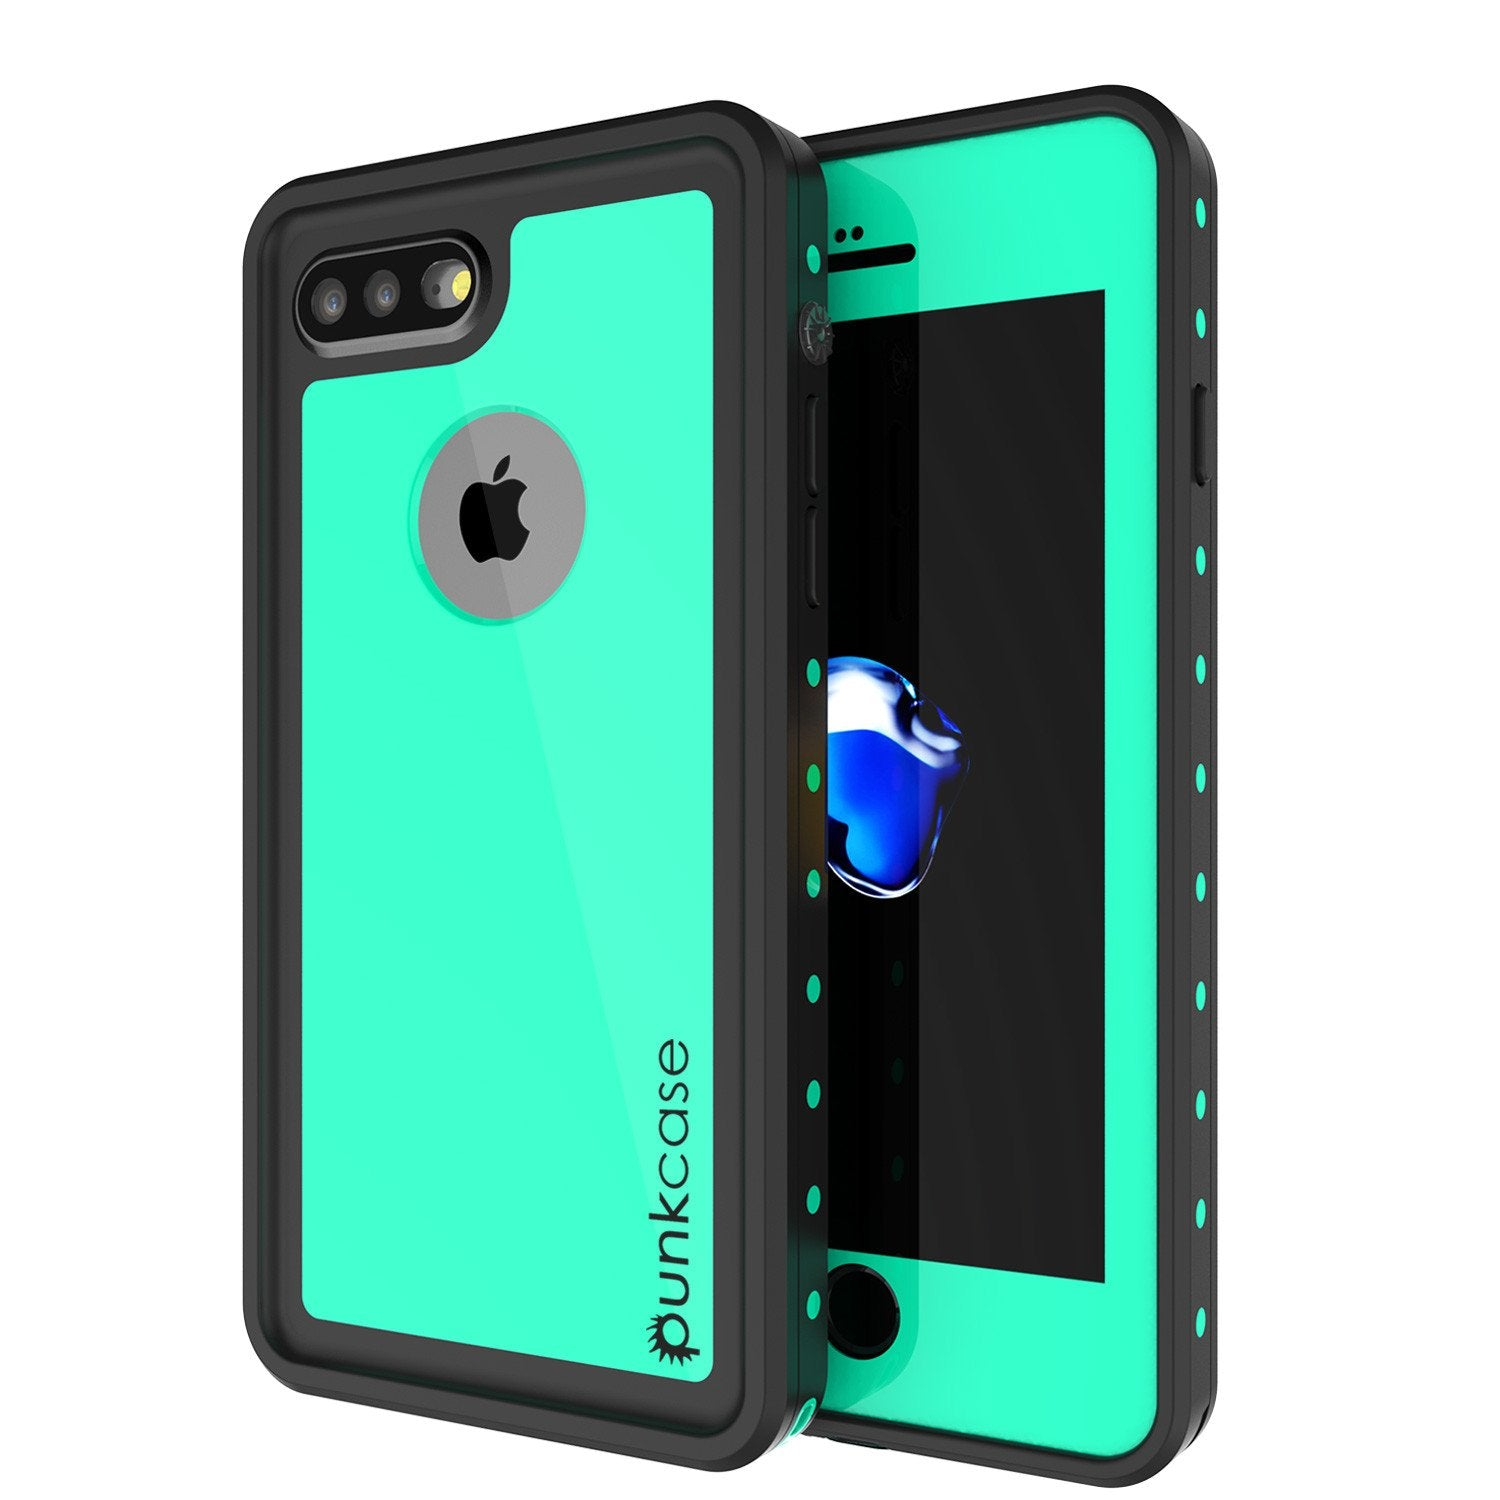 iPhone 8+ Plus Waterproof IP68 Case, Punkcase [Teal] [StudStar Series] [Slim Fit] [Dirtproof]